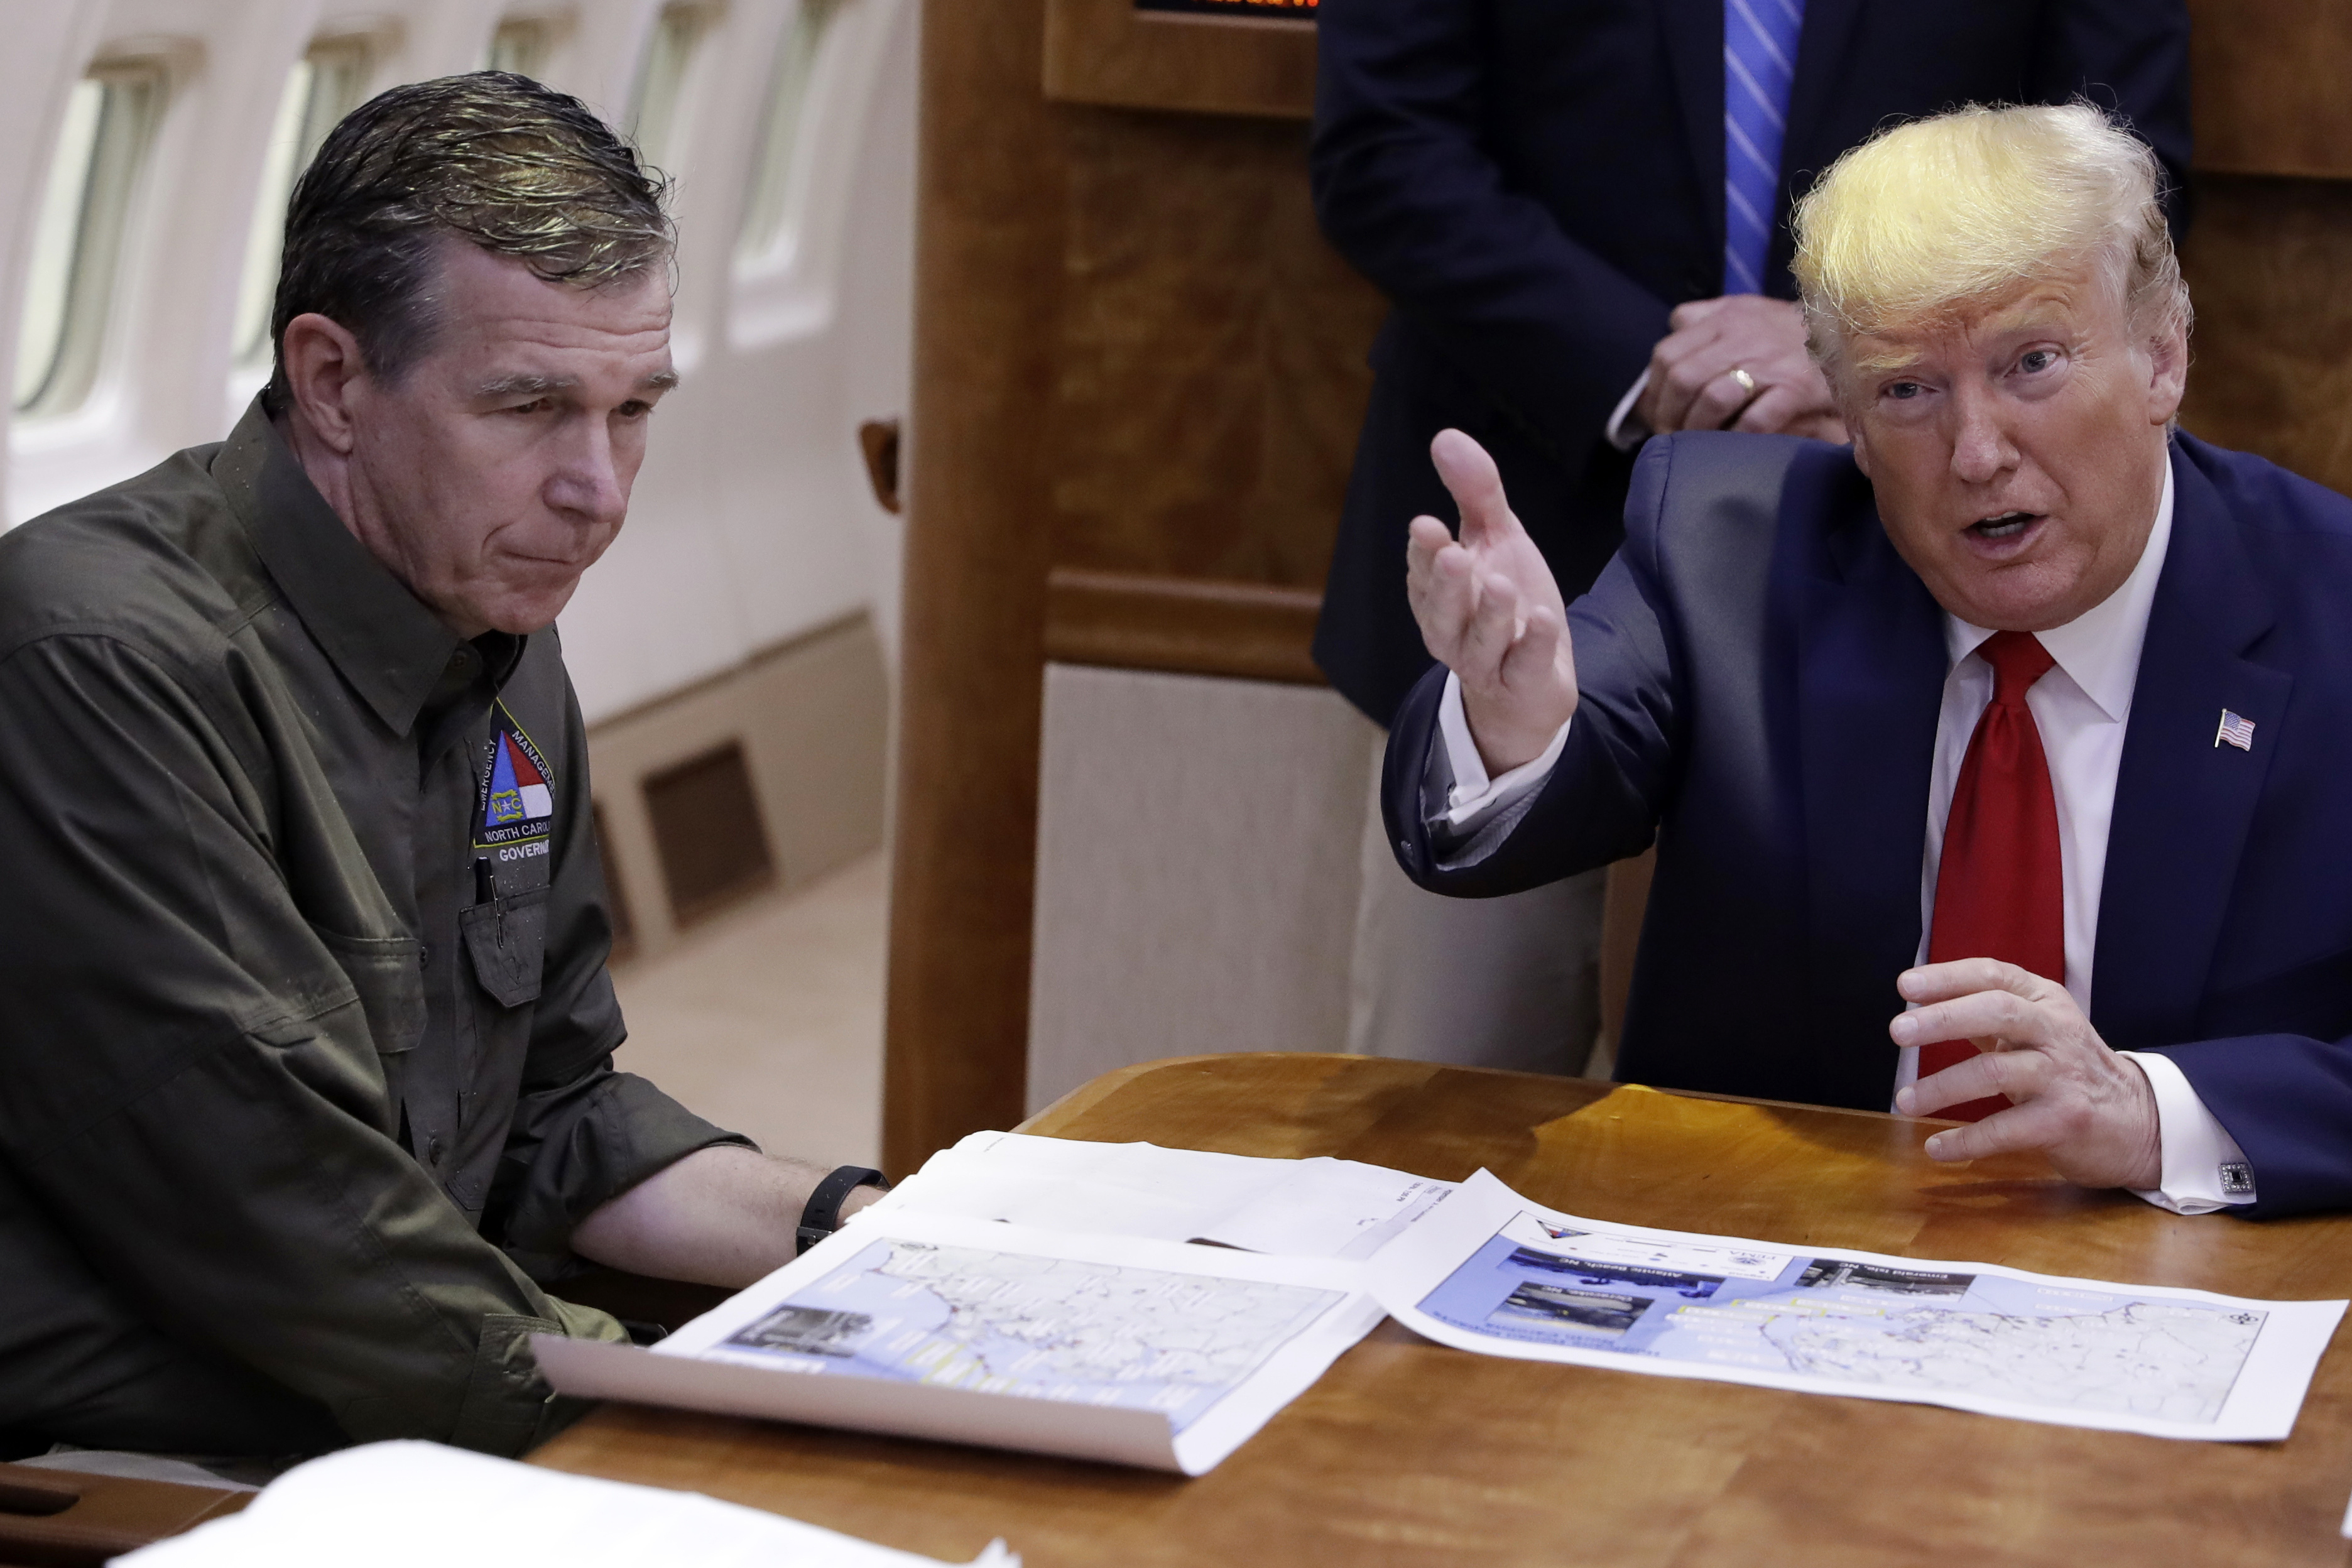 President Donald Trump participates in a briefing about Hurricane Dorian with North Carolina Gov. Roy Cooper, left, aboard Air Force One at Marine Corps Air Station Cherry Point in Havelock, N.C on Sept. 9, 2019.